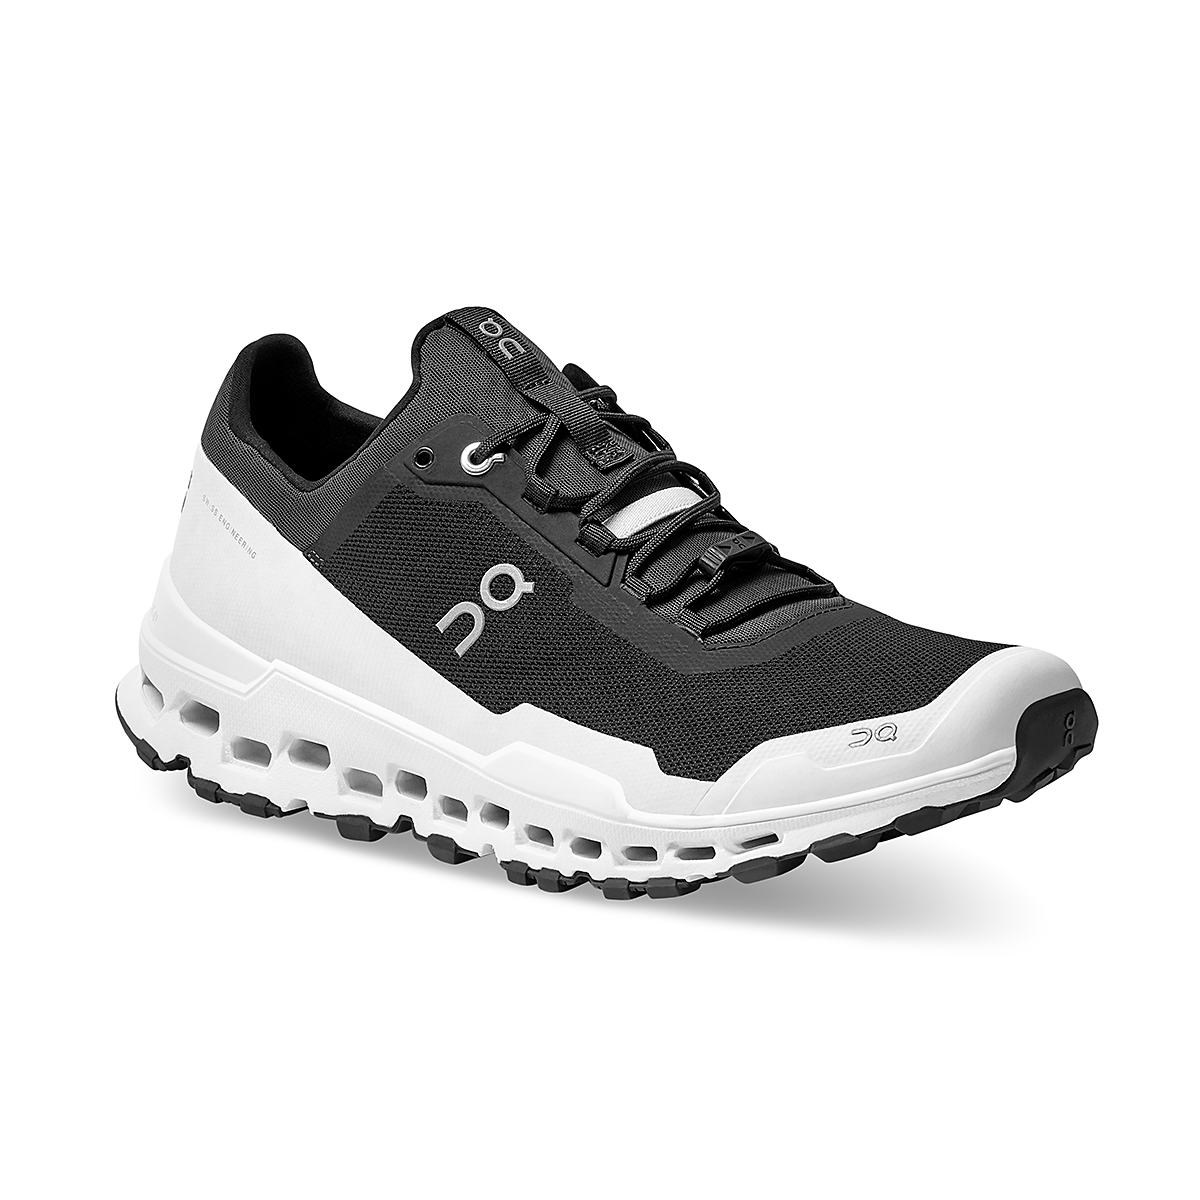 Men's On Cloudultra Trail-Running Shoes - Color: Black/White - Size: 7 - Width: Regular, Black/White, large, image 3